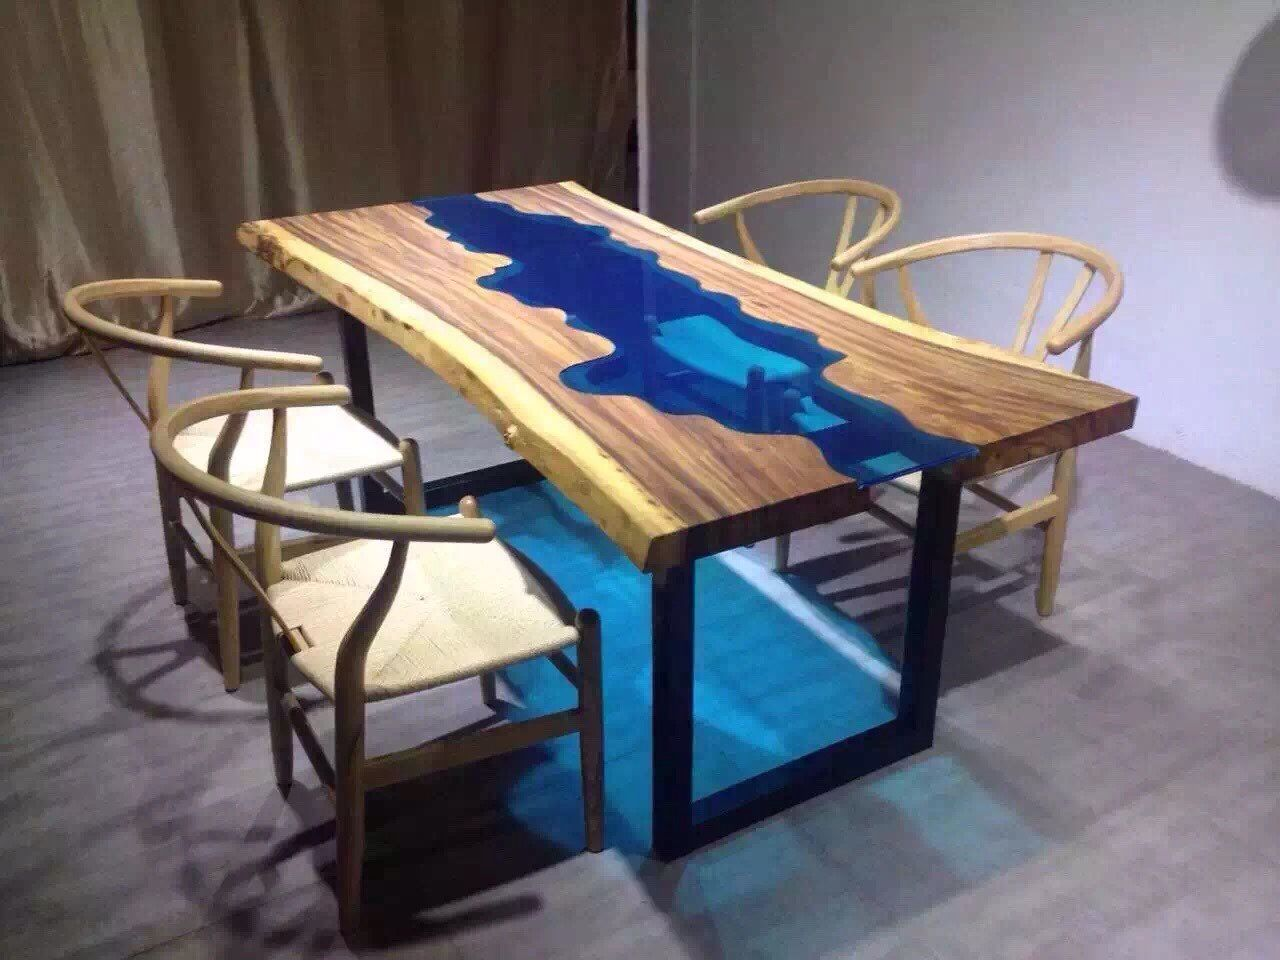 Custom made acacia live edge river wood and glass dining for Dining table designs in wood and glass